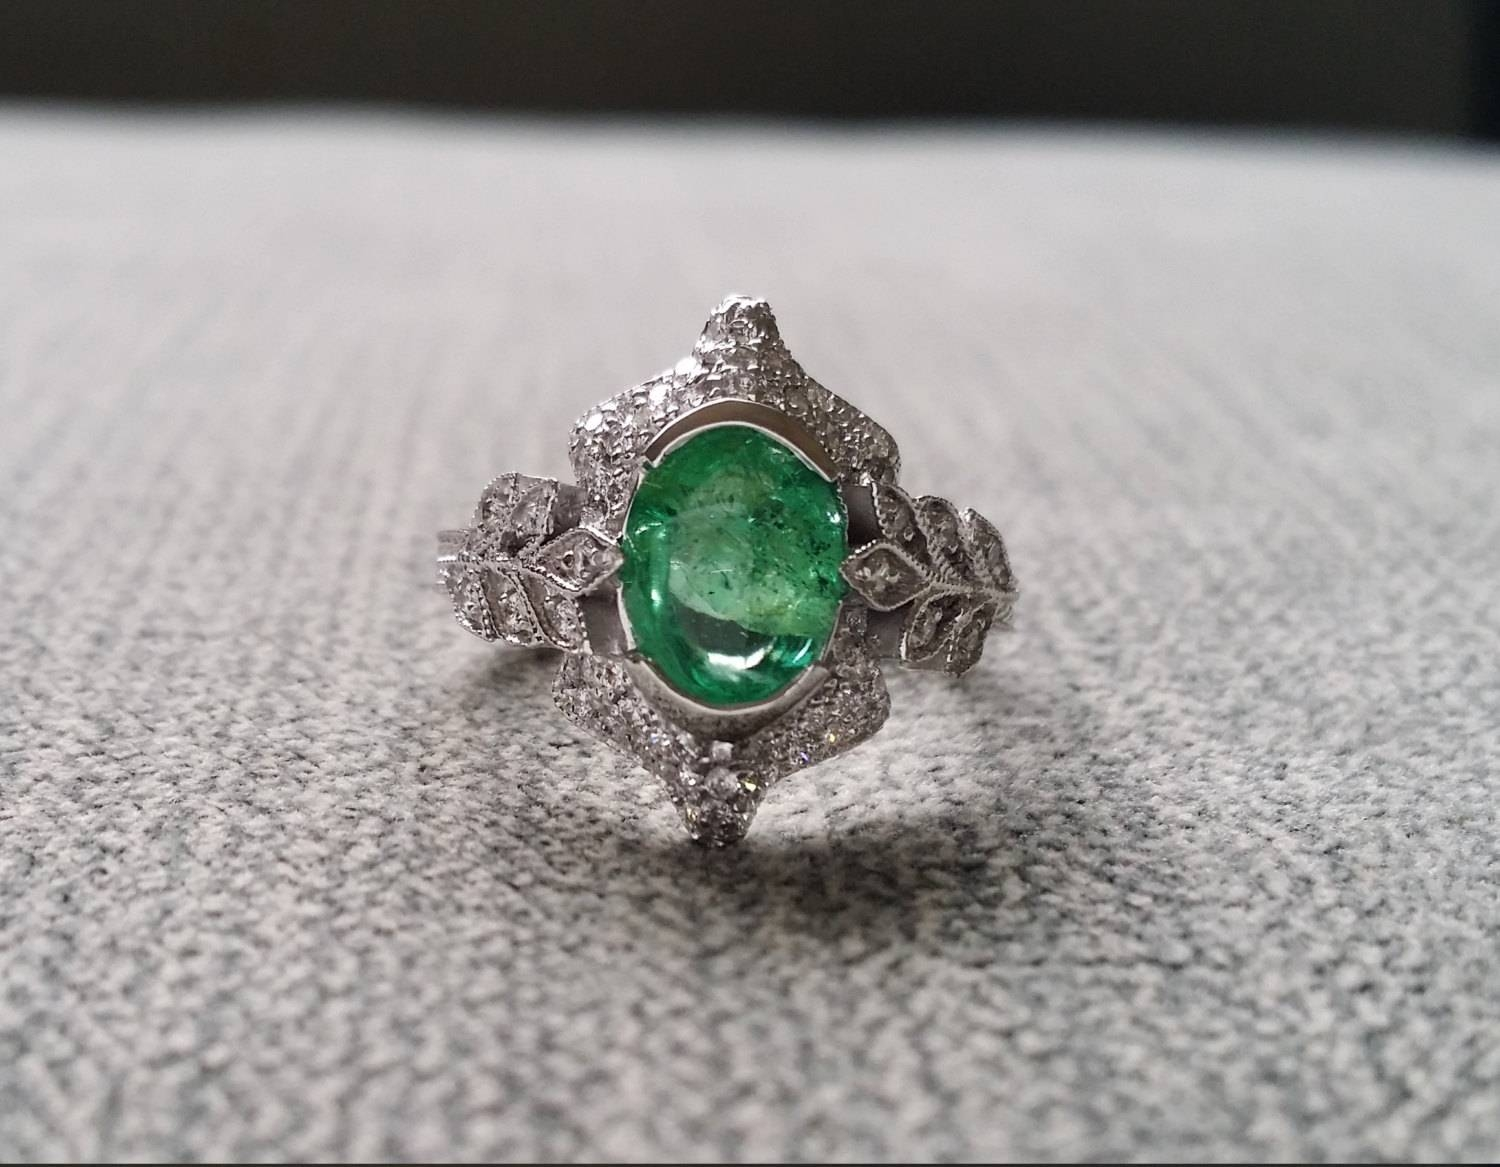 Antique Emerald Diamond Ring Gemstone Engagement Ring Green Intended For Elven Engagement Rings (View 2 of 15)